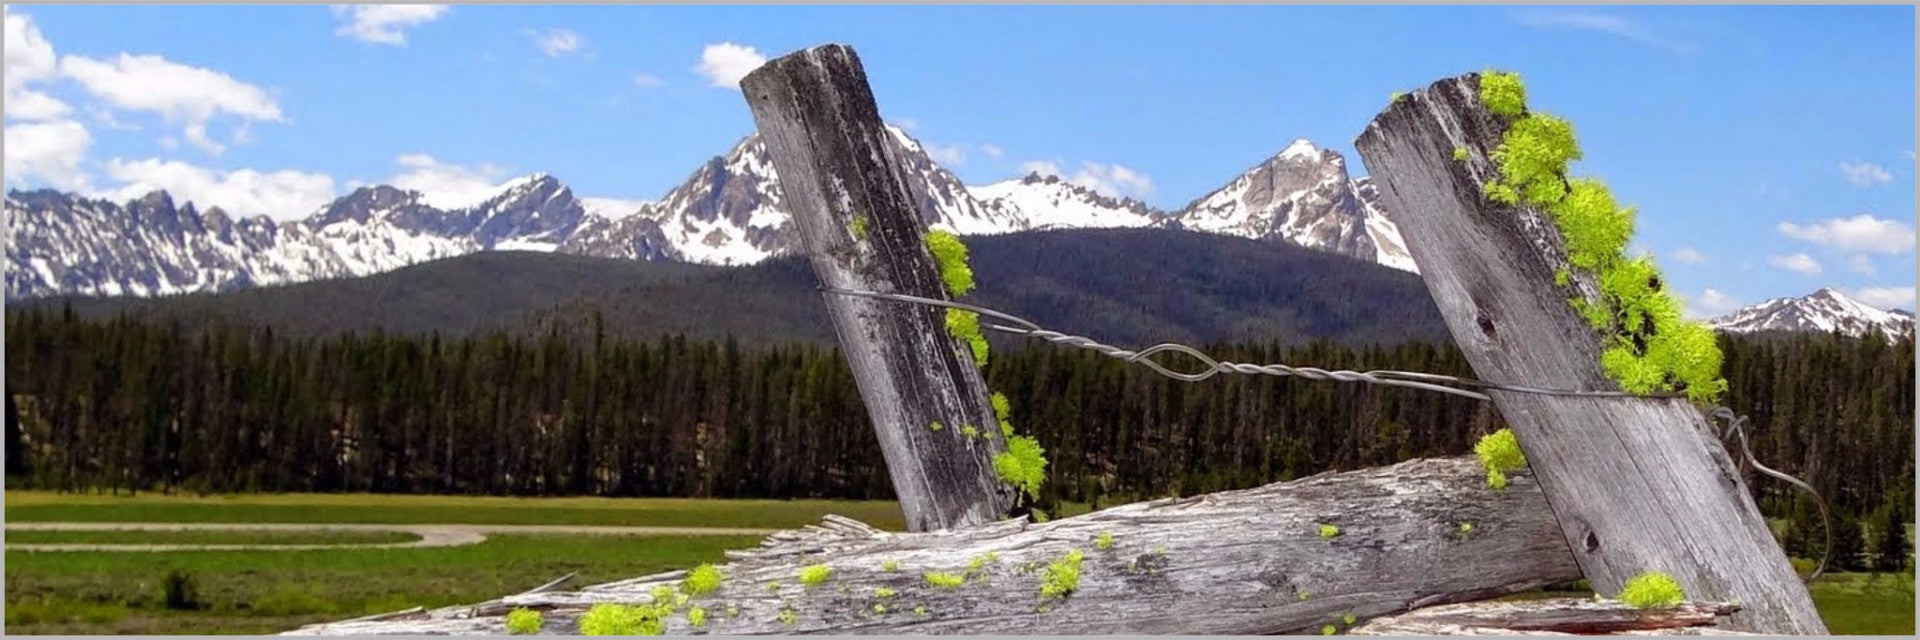 Wall Cling- Sawtooth Mountains & fence